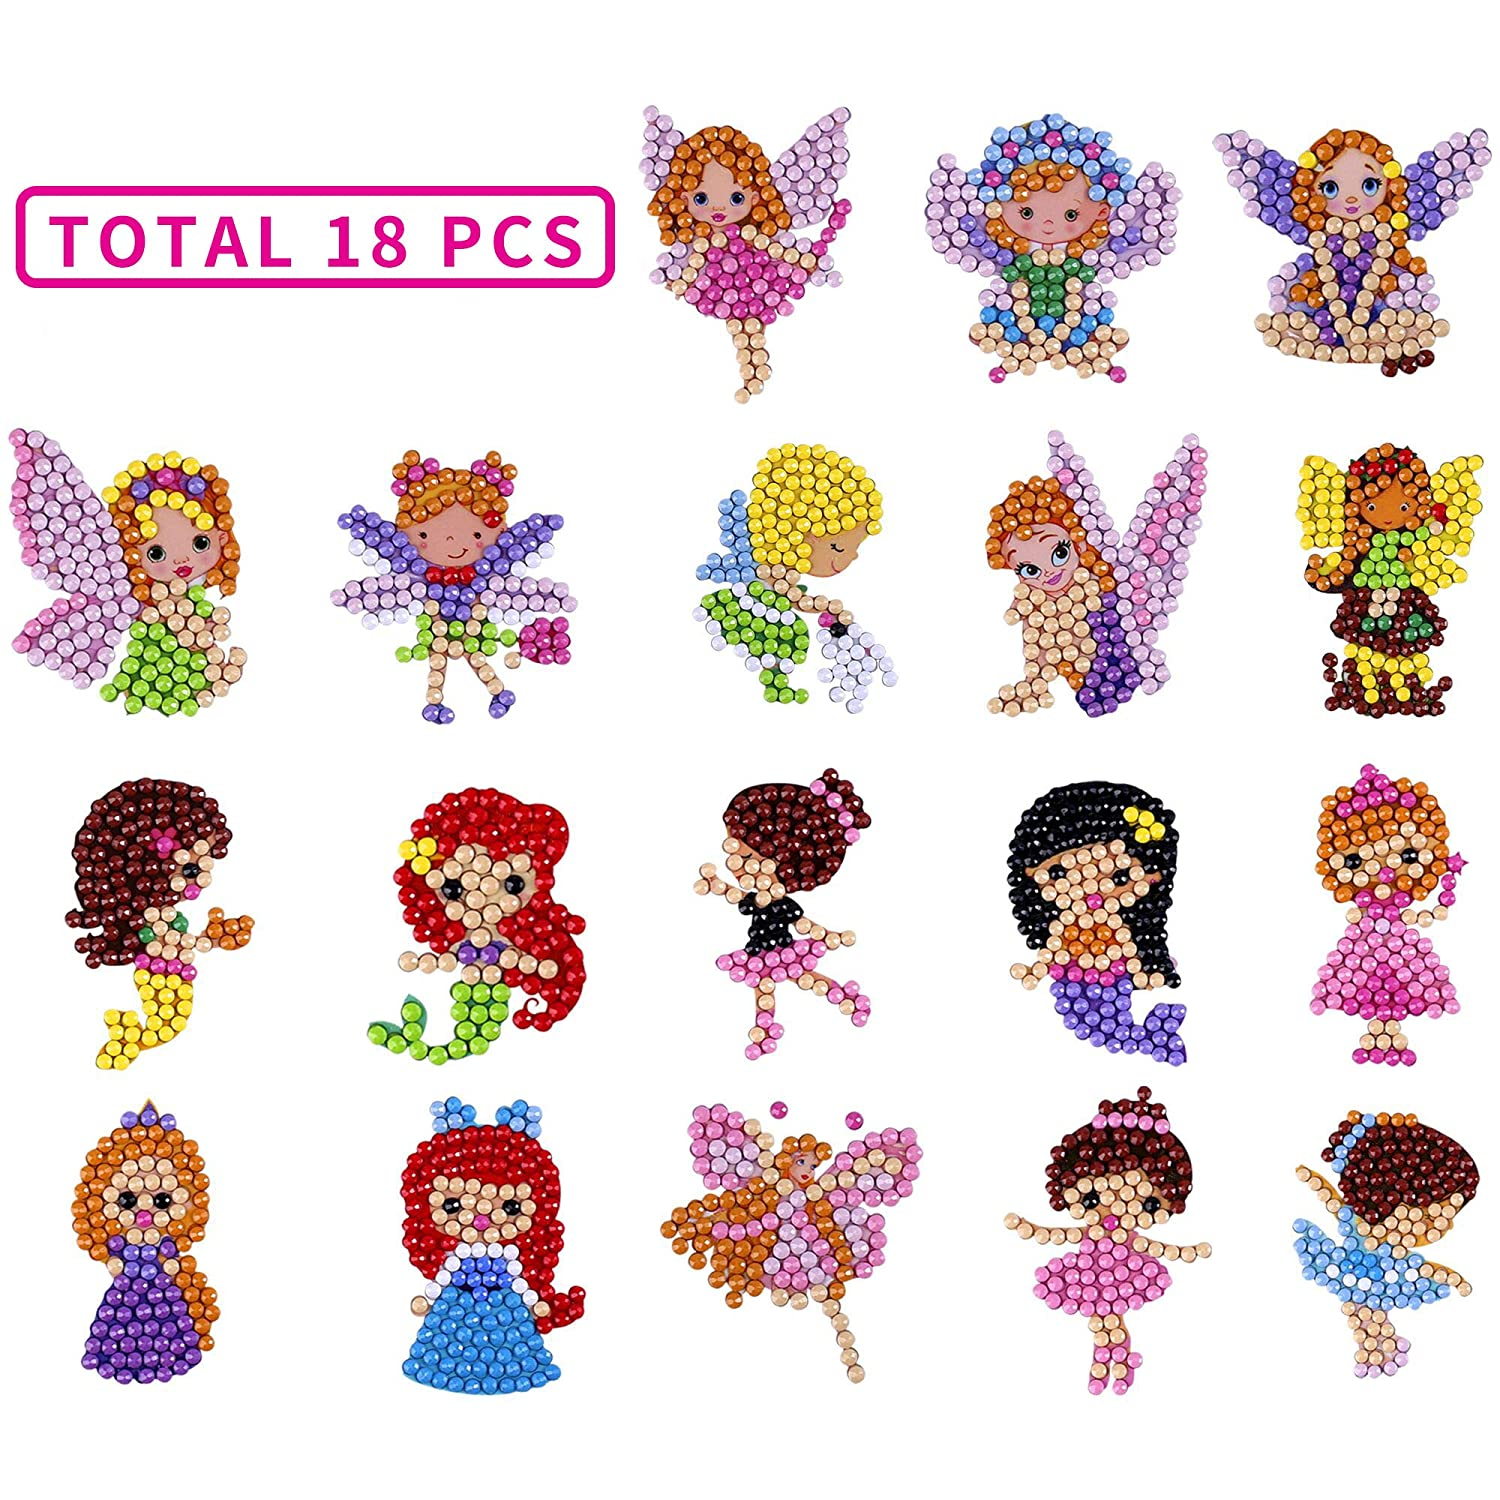 10 Packs, Princess ZKSM Diamond Painting Kits for Kids DIY Paint by Numbers 5D Diamonds Stickers Arts and Crafts Dotz Kits for Kids